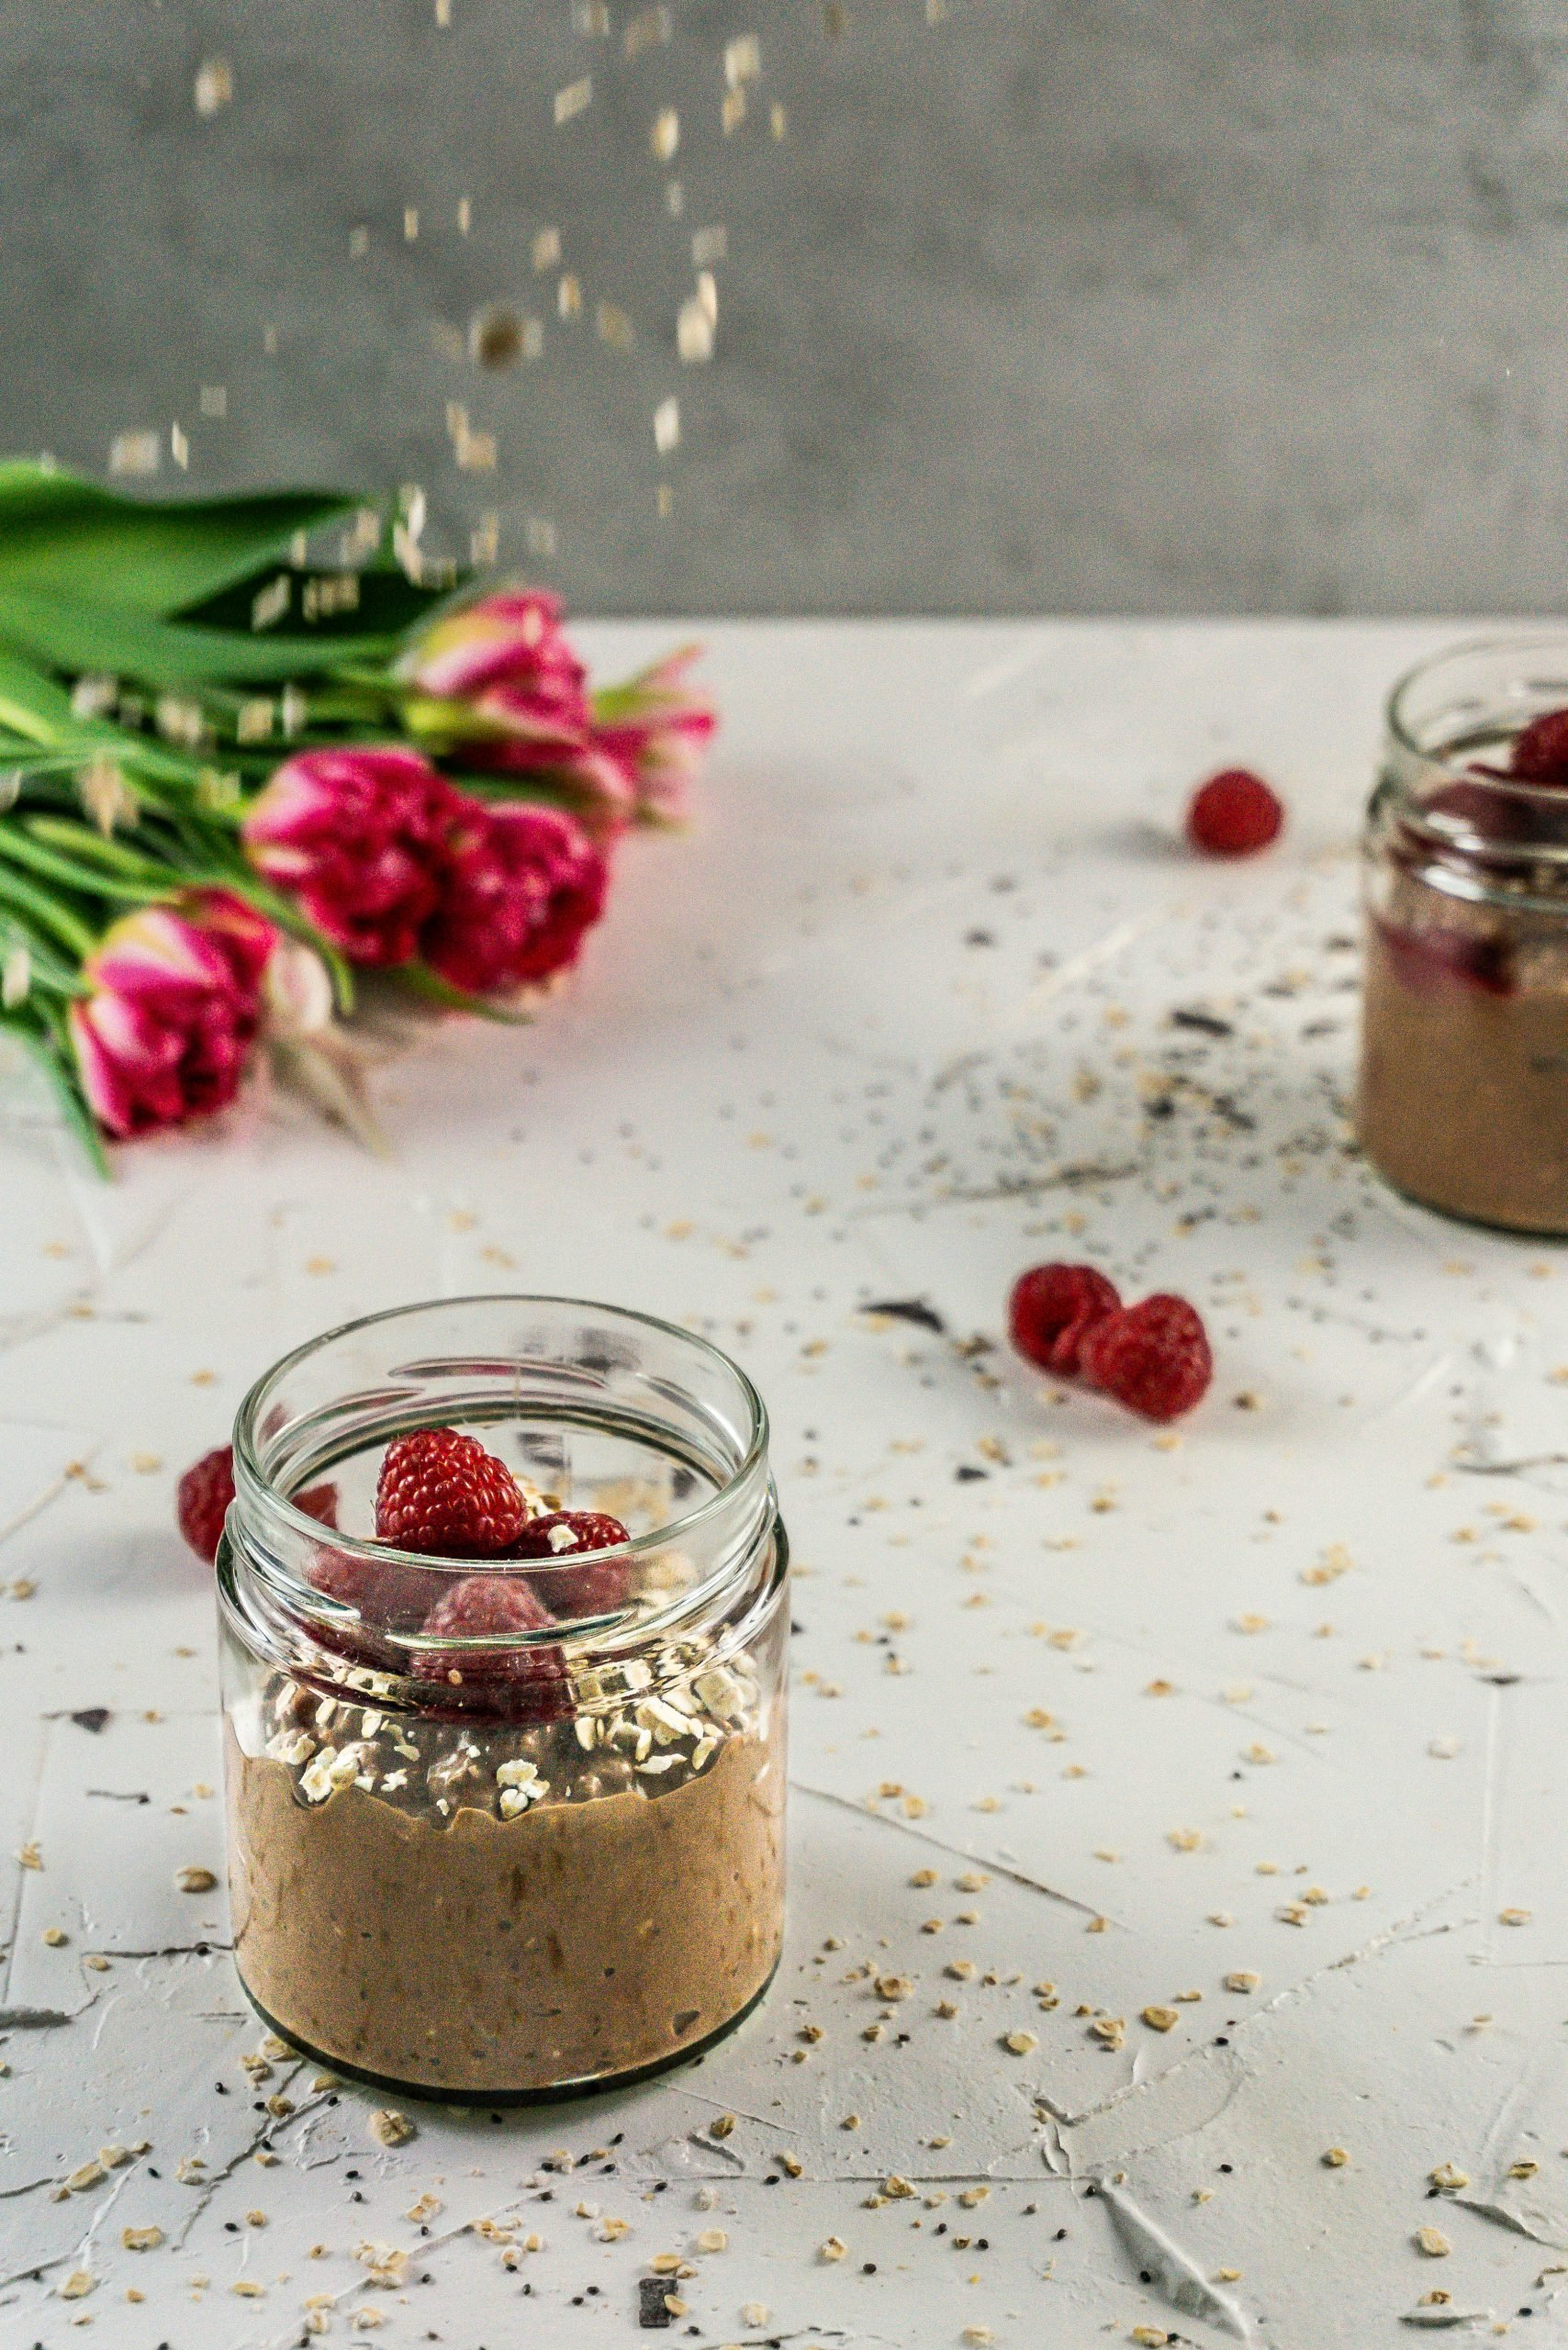 Oats flying through the air on a jar of Chocolate Raspberry Overnight Oats